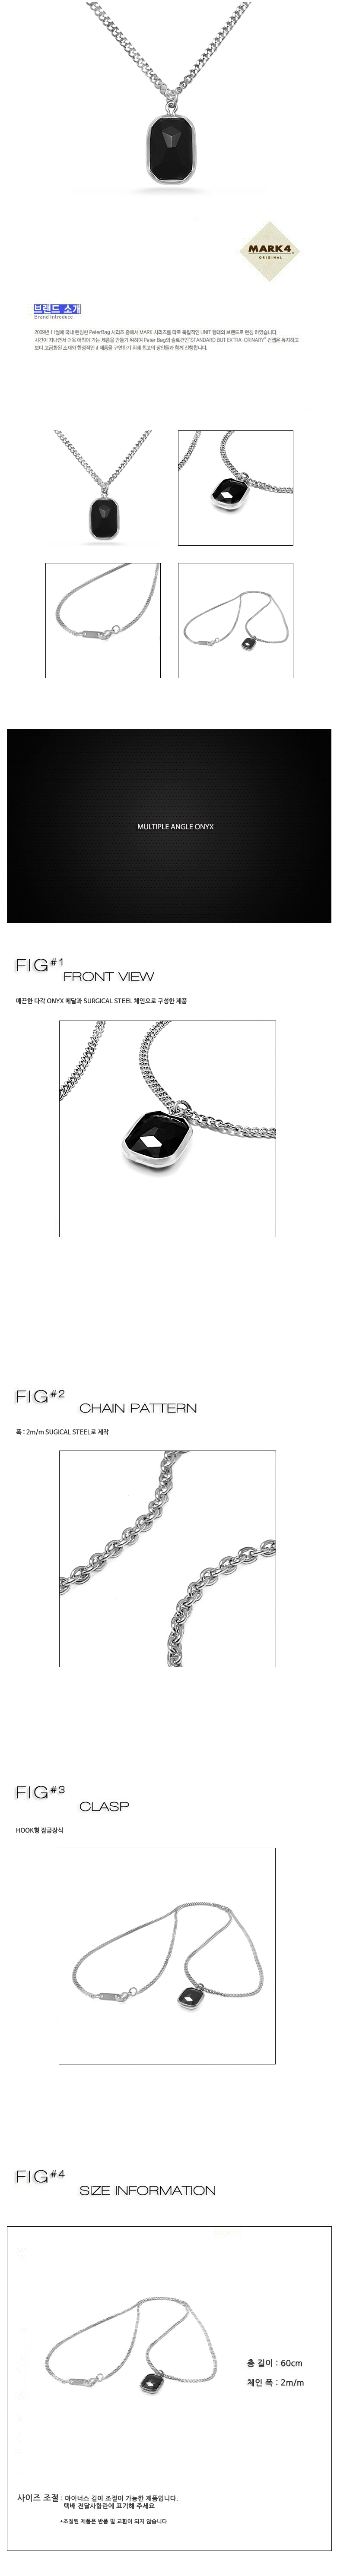 [마크 4] MARK-4 NECKLACE MULTIPLE ONYX